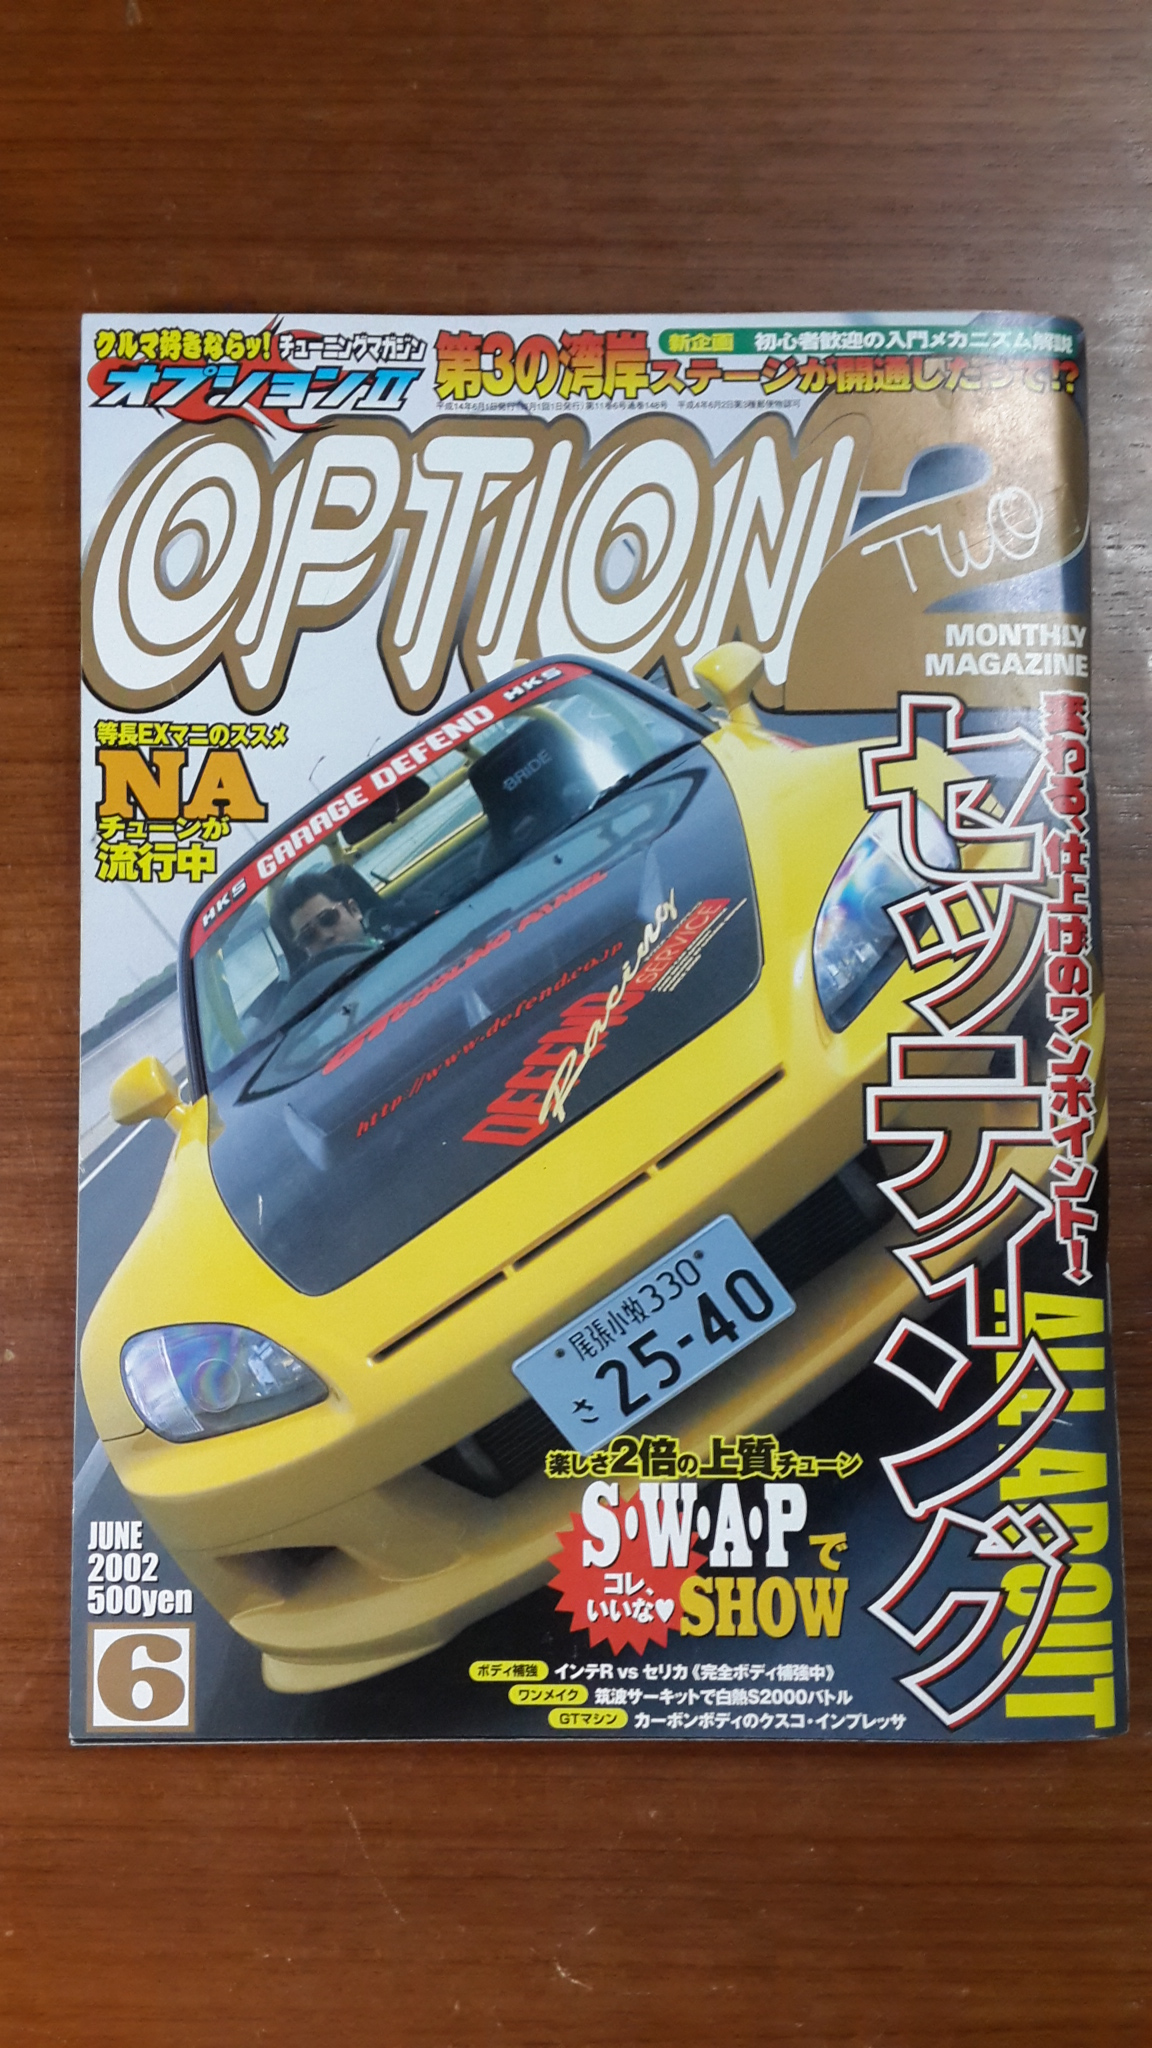 OPTION TWO 2 (Japan) : 2002 / 6